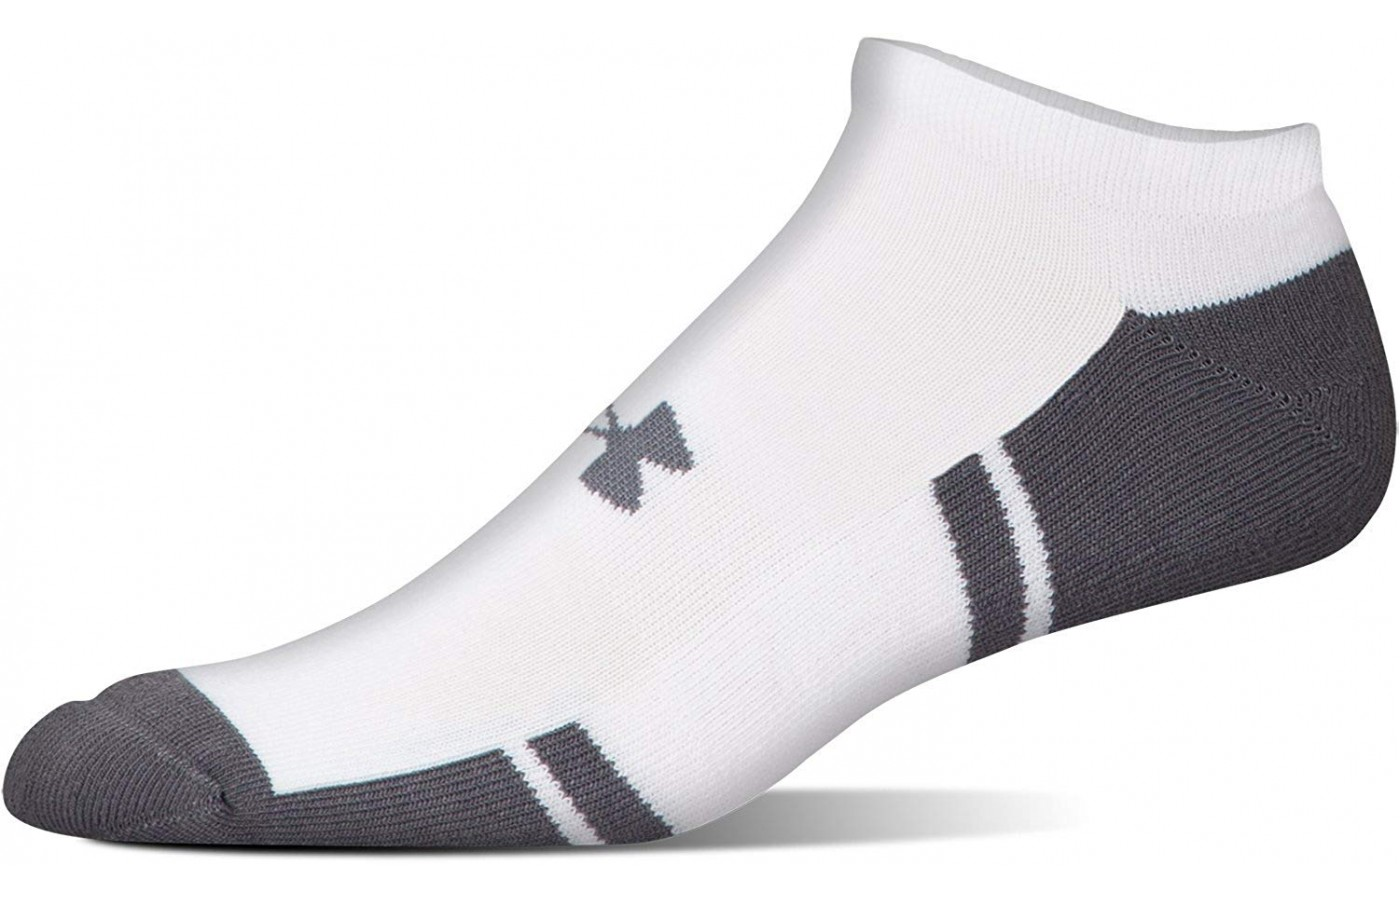 Under Armour Resistor 3.0 No Show Socks side